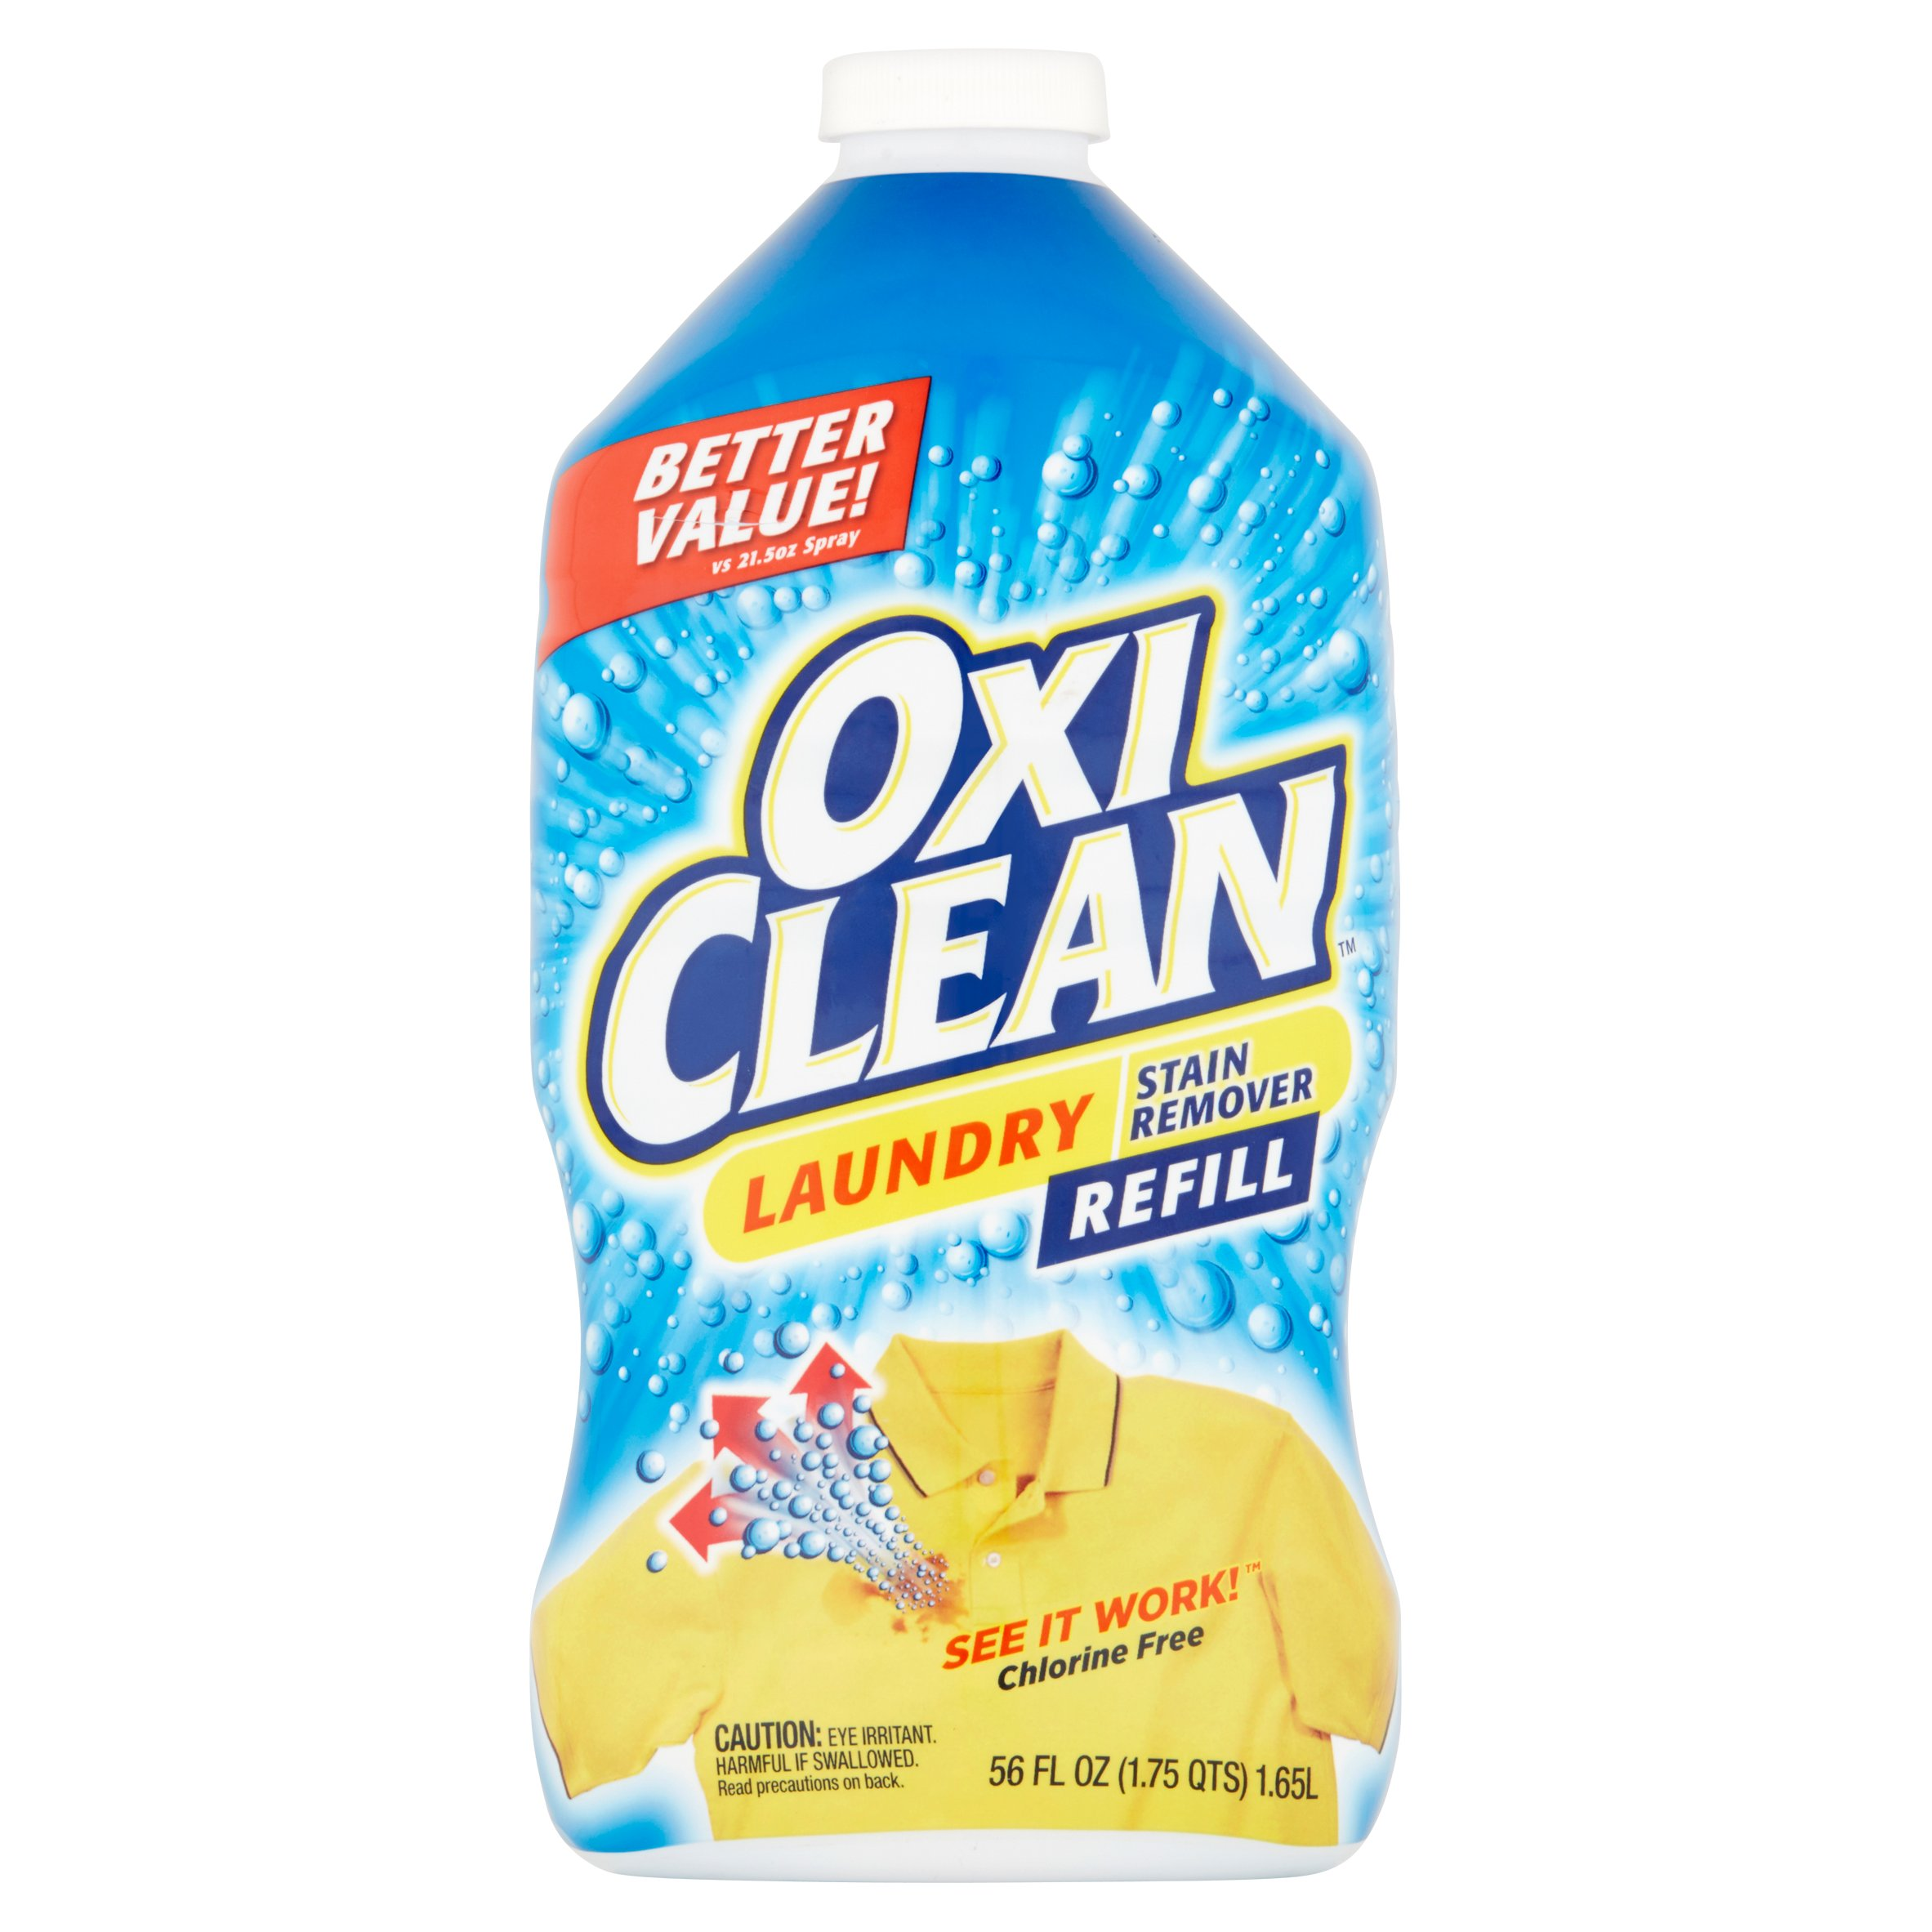 OxiClean Laundry Stain Remover Refill, 56 Oz